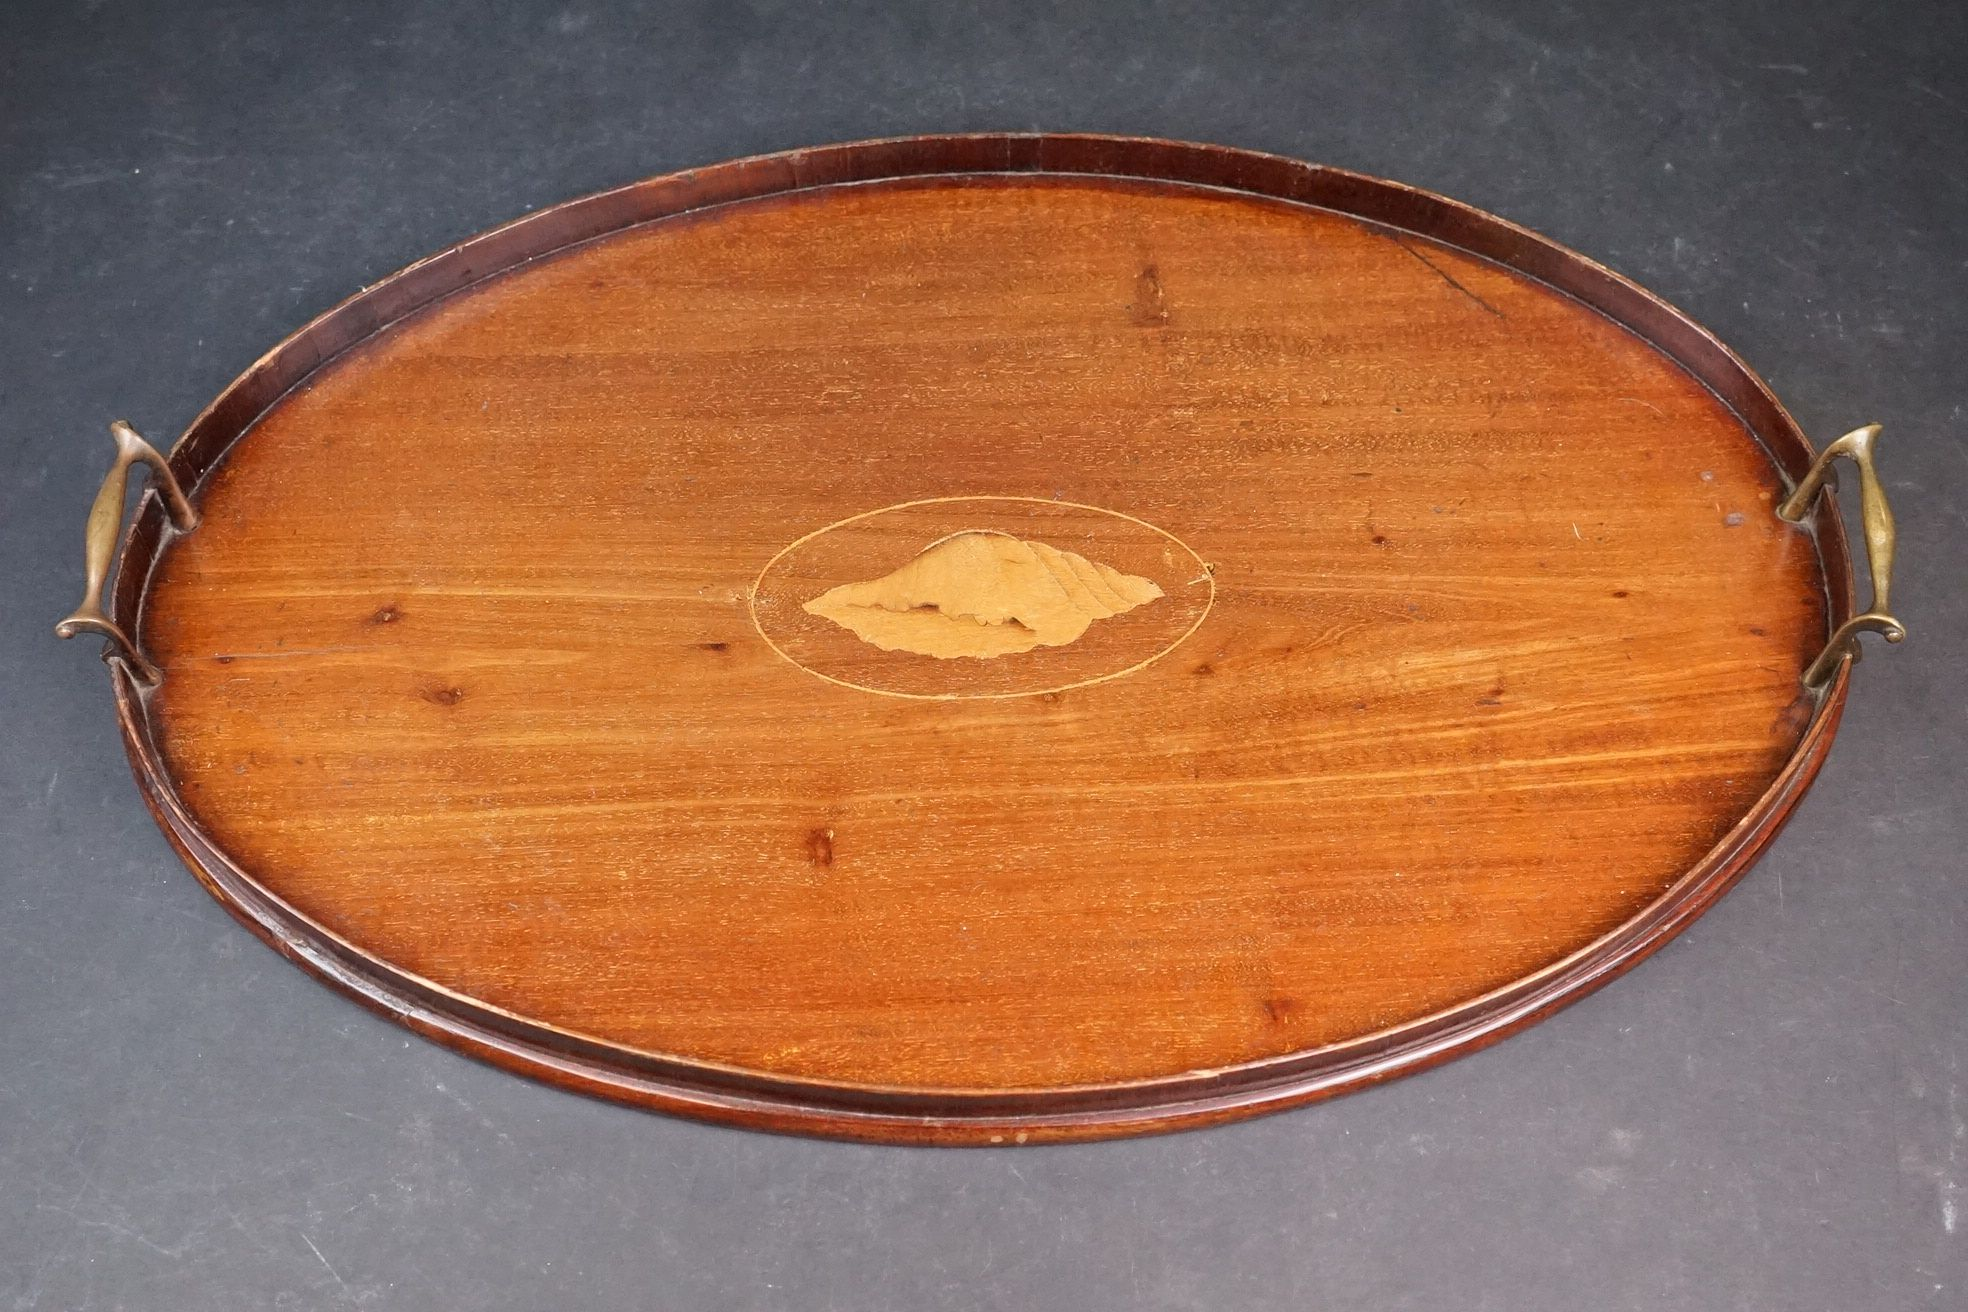 An early 20th century wooden oval serving tray with inlayed decoration.